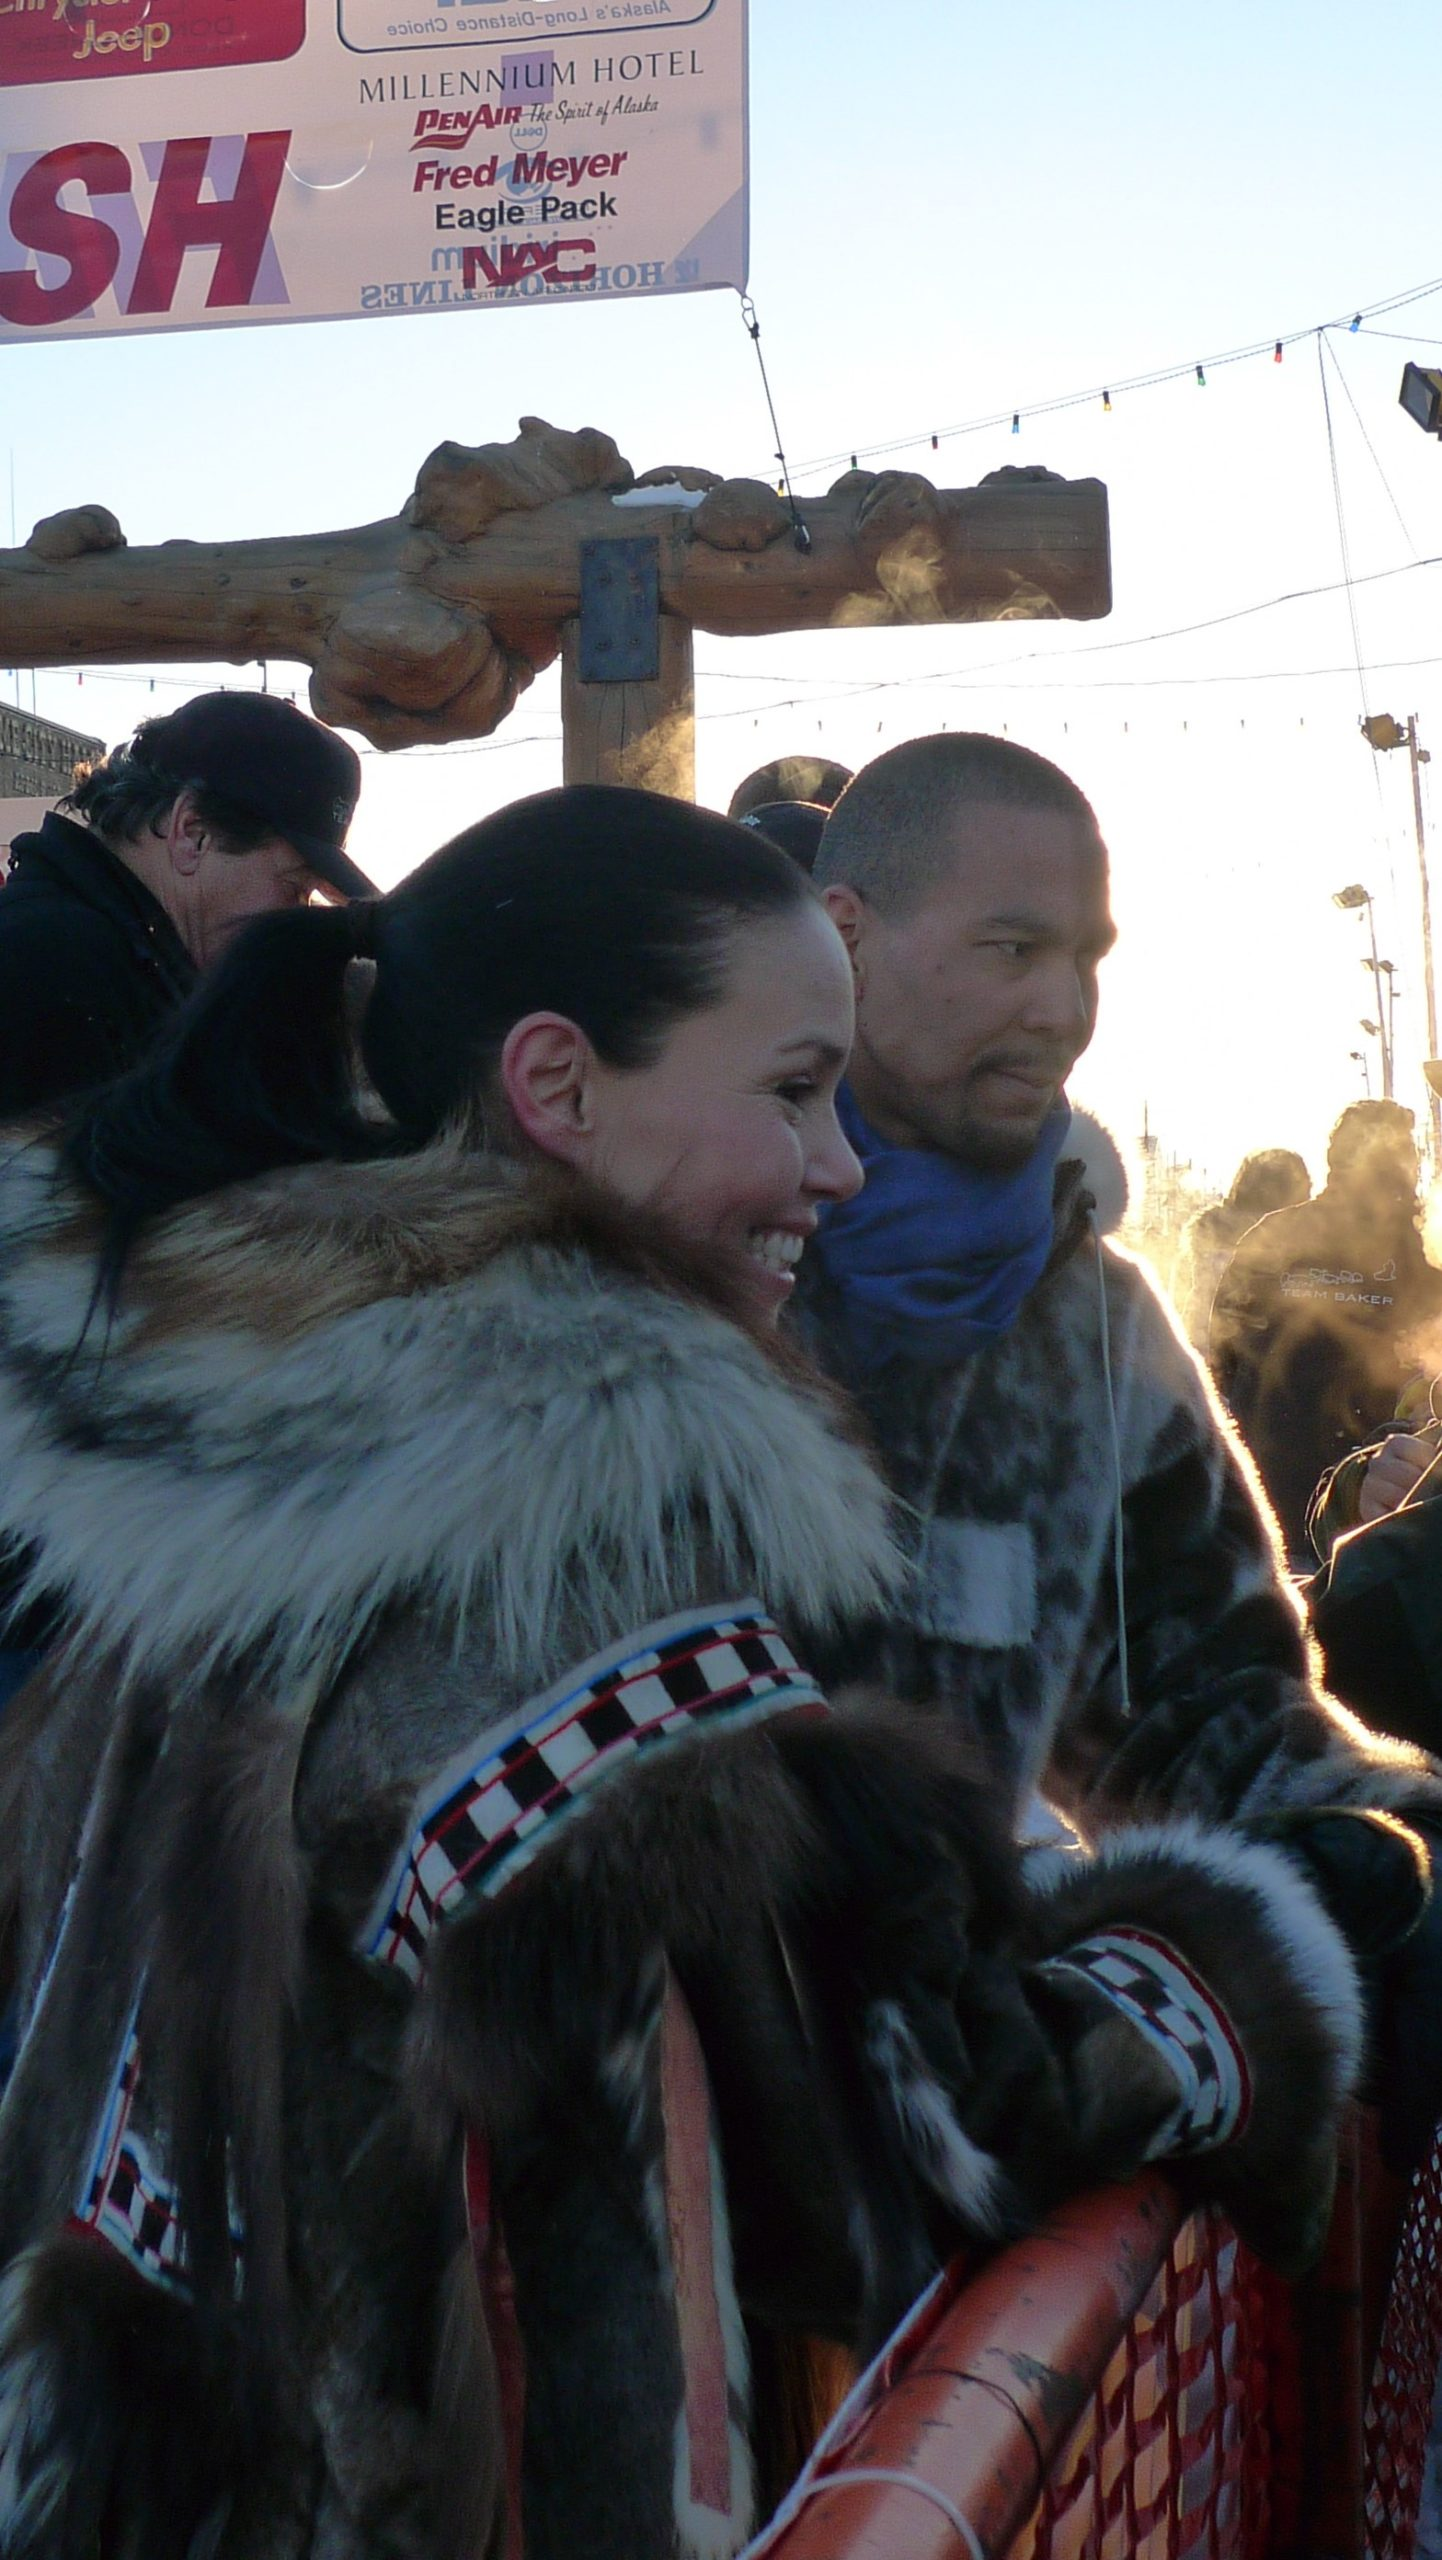 Photograph of a woman shown in profile. She leans against a red metal railing and looks to the right. She is smiling. She wears an elaborate parka with black and white trimming.